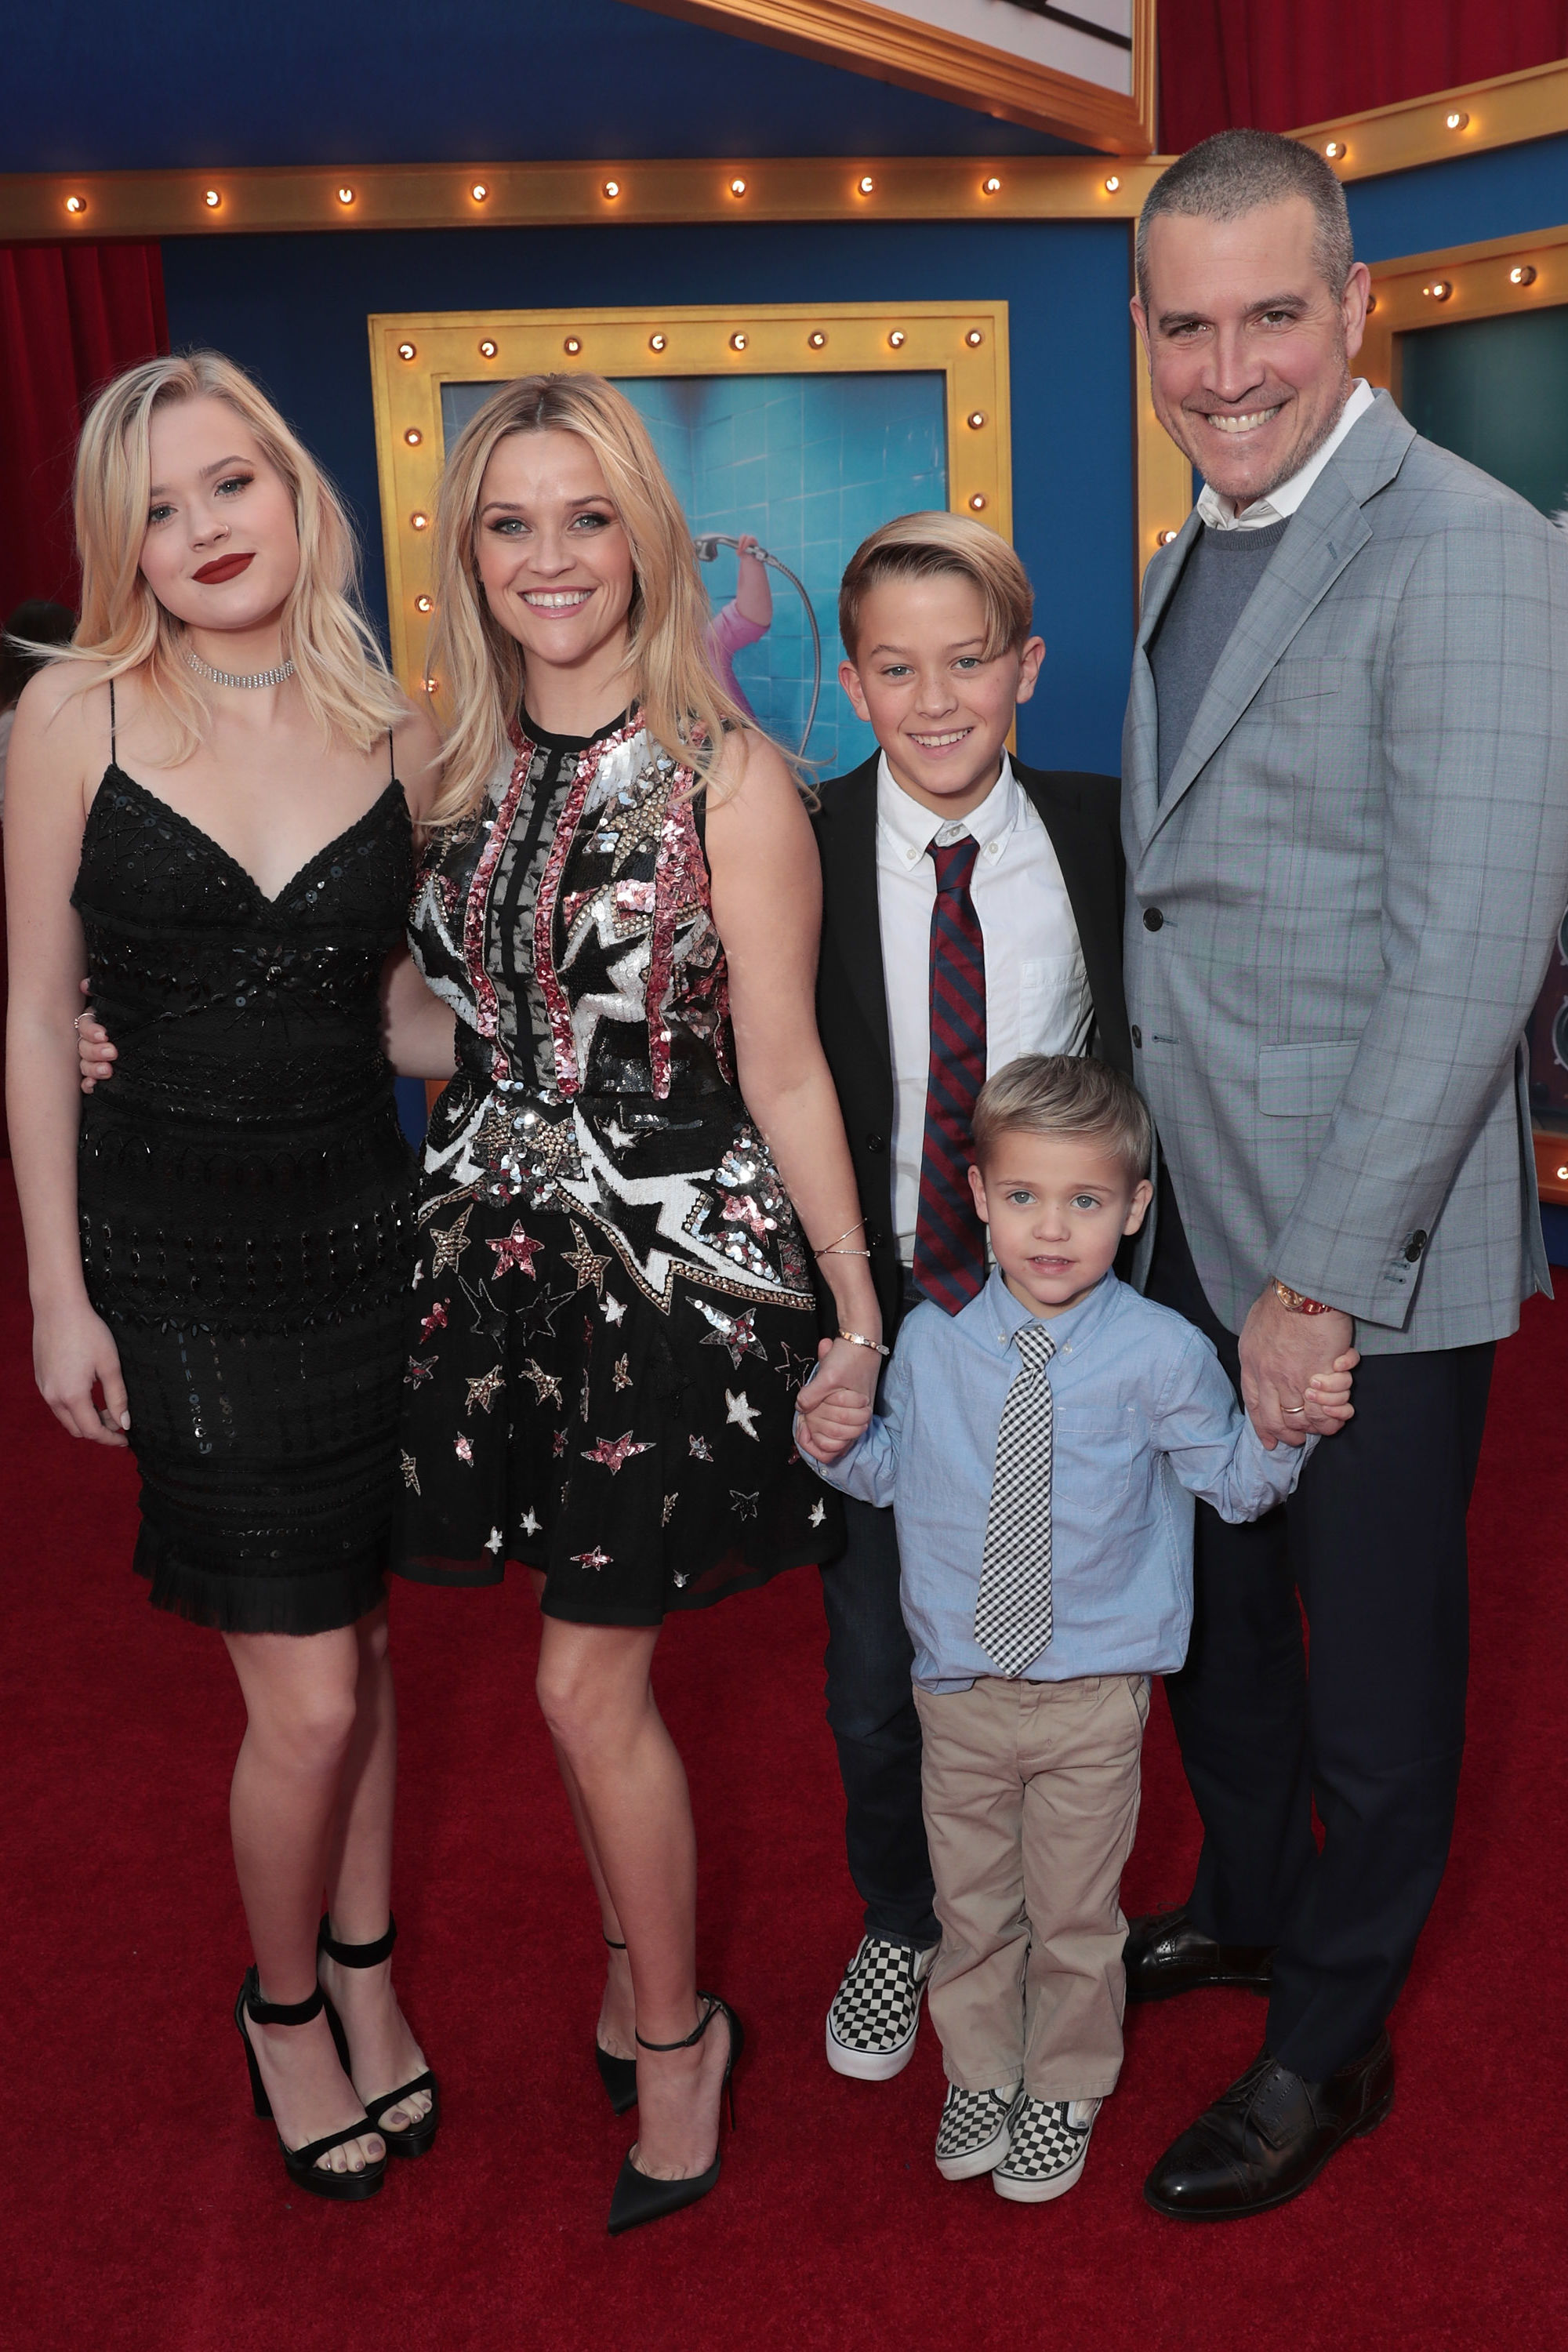 Reese Witherspoon and Matthew McConaughey Brought Their Adorable Kids to the 'Sing' Premiere